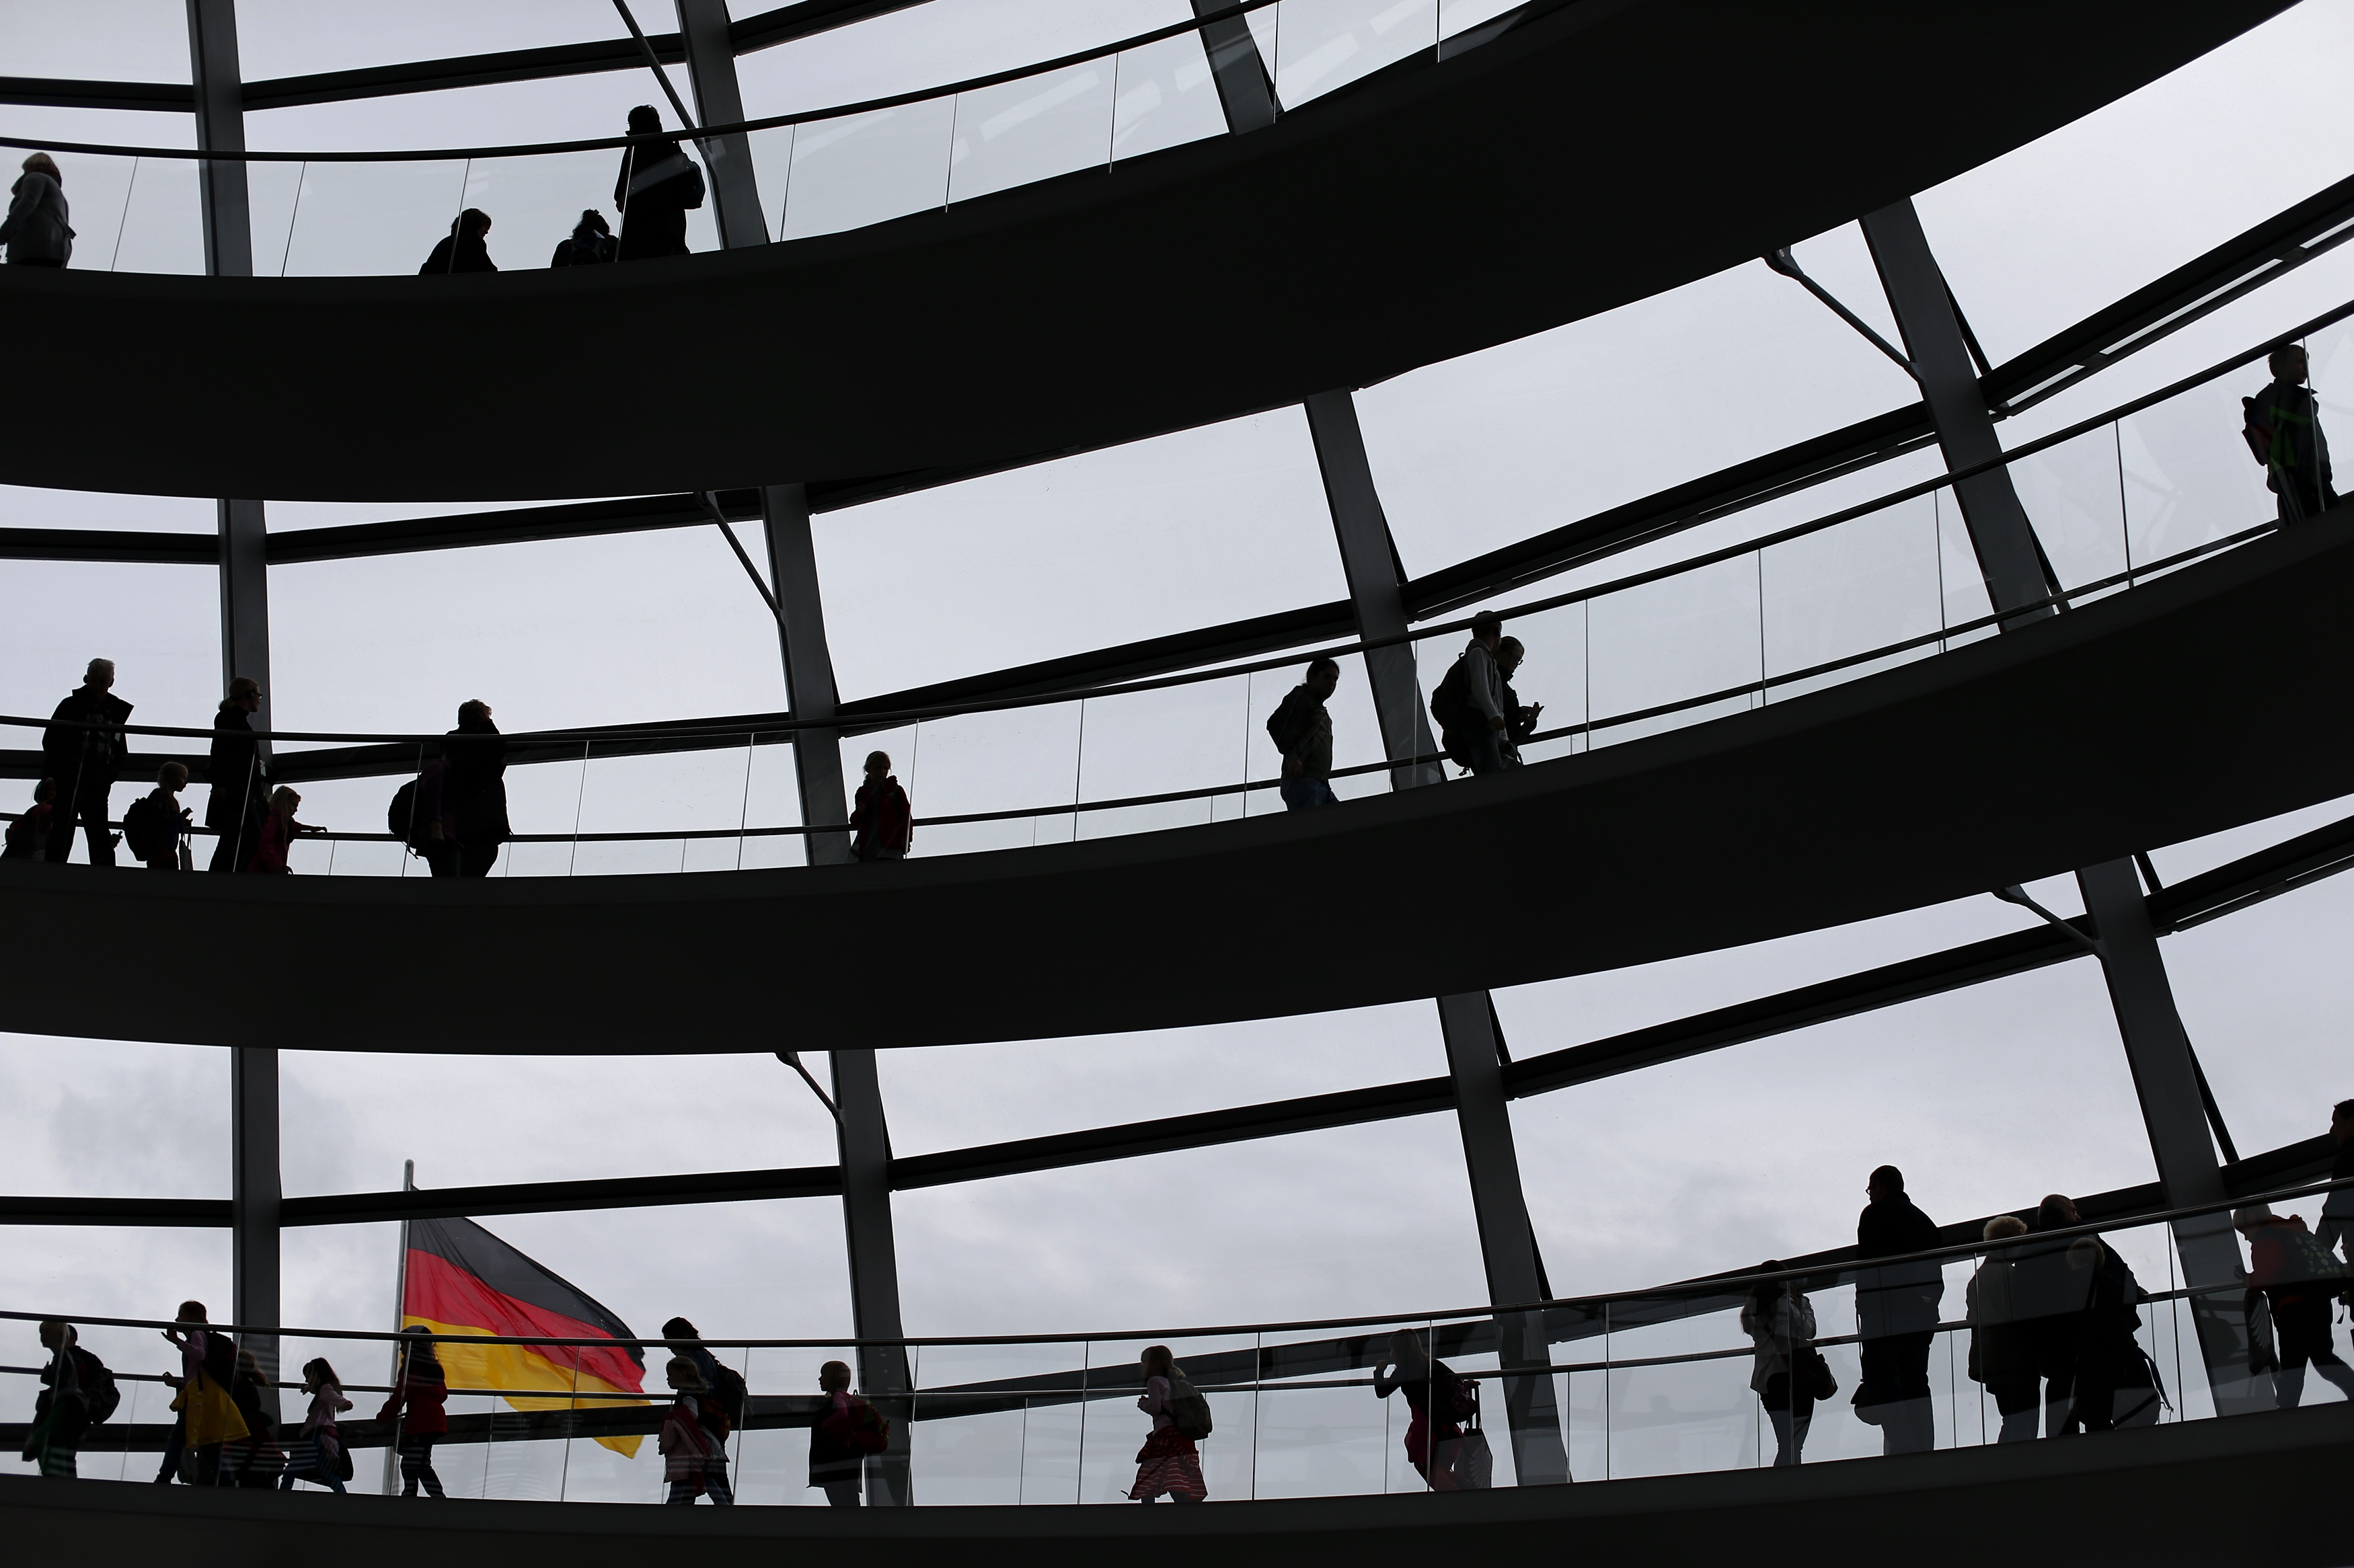 People walk inside the dome of the Reichstag building, the seat of the German lower house of parliament Bundestag in Berlin, September 16, 2013. German voters will take to the polls in a general election on September 22.